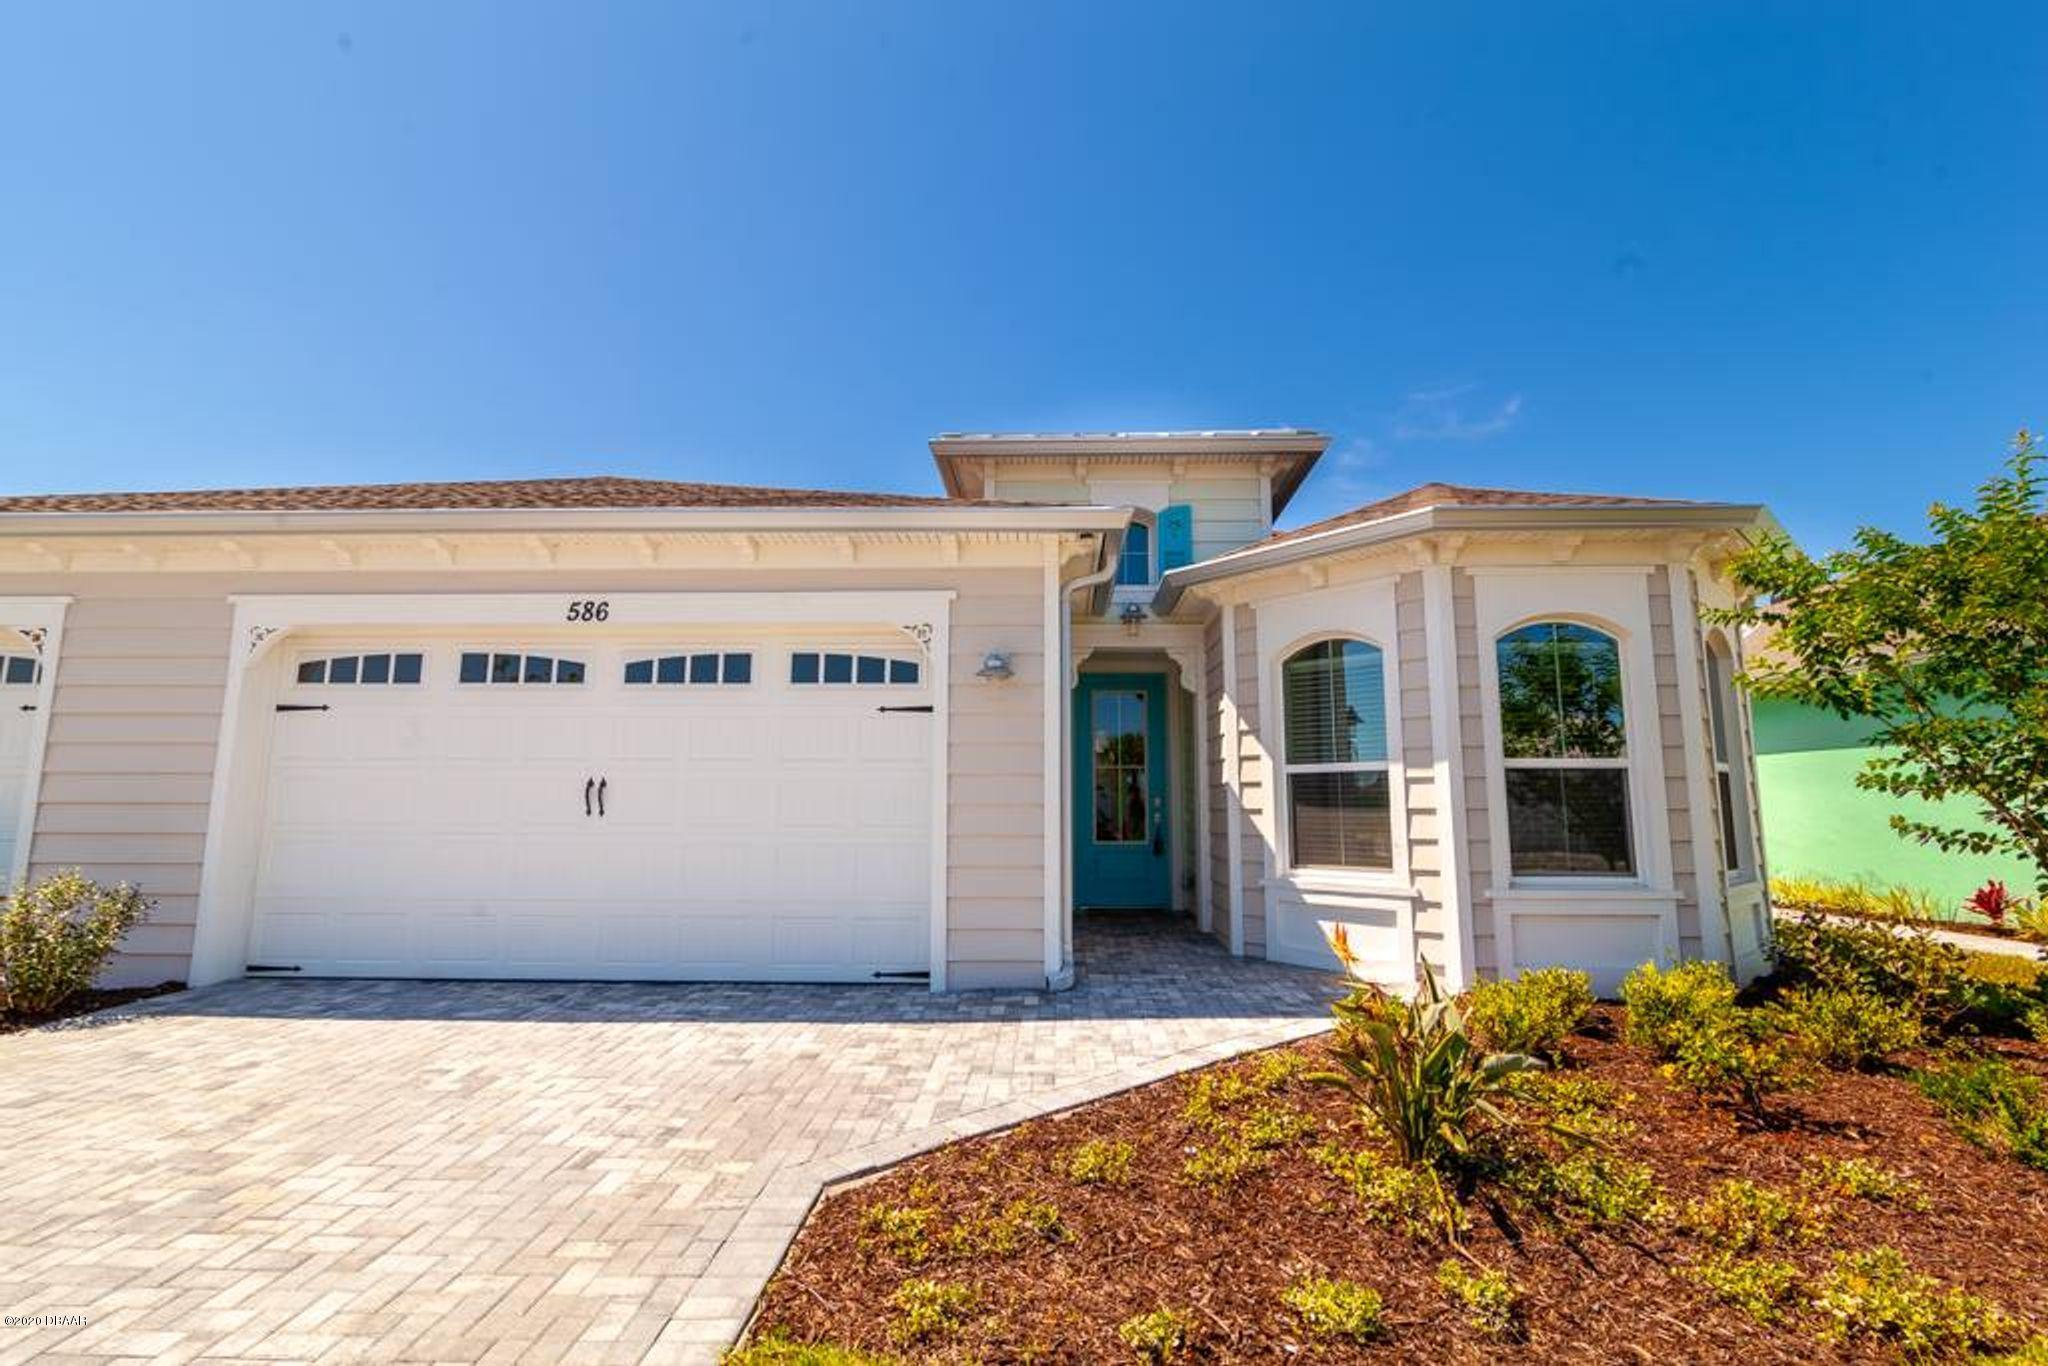 Photo of 586 Lost Shaker Way, Daytona Beach, FL 32124